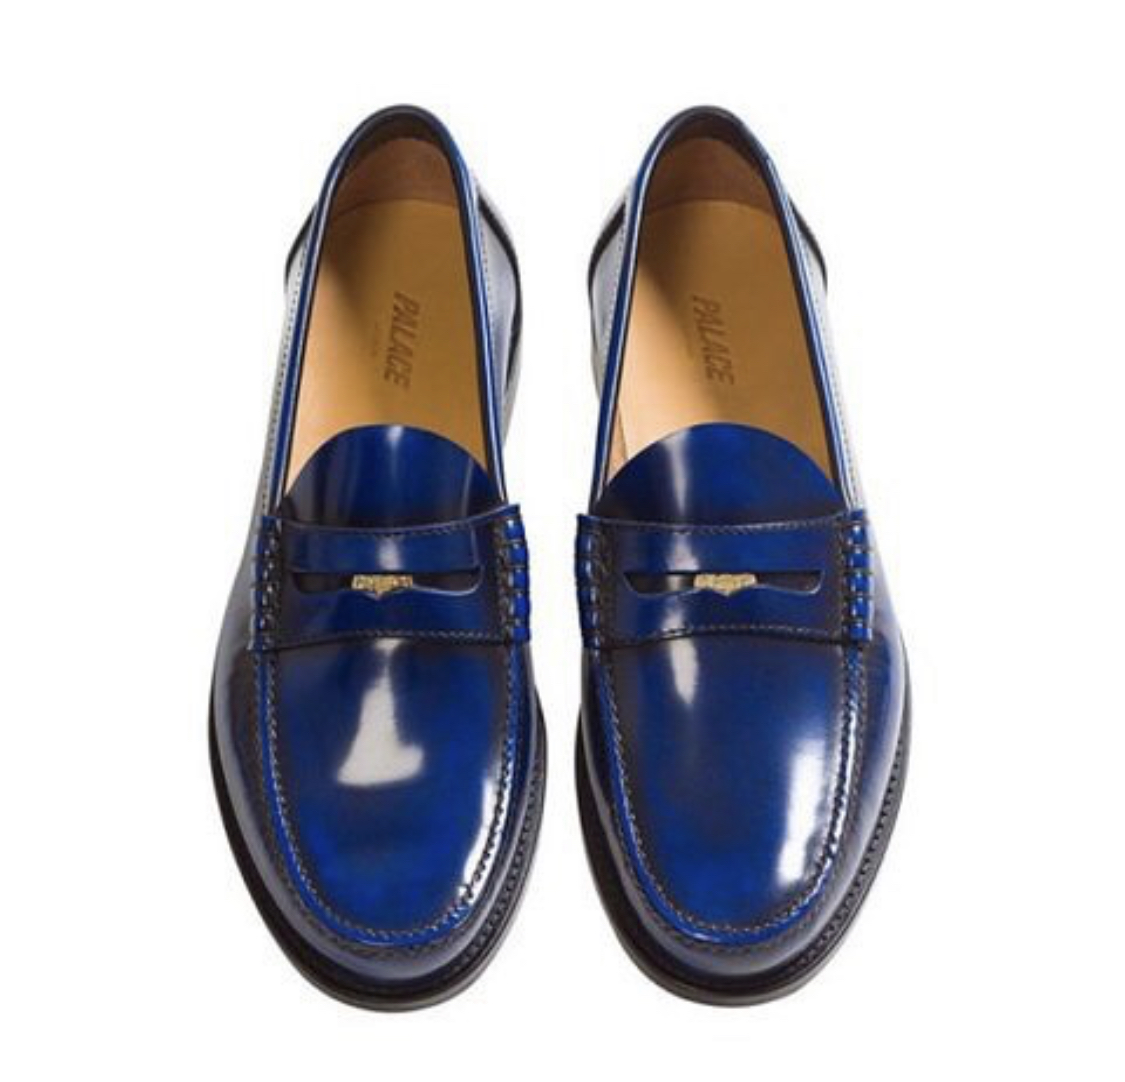 palace penny loafers